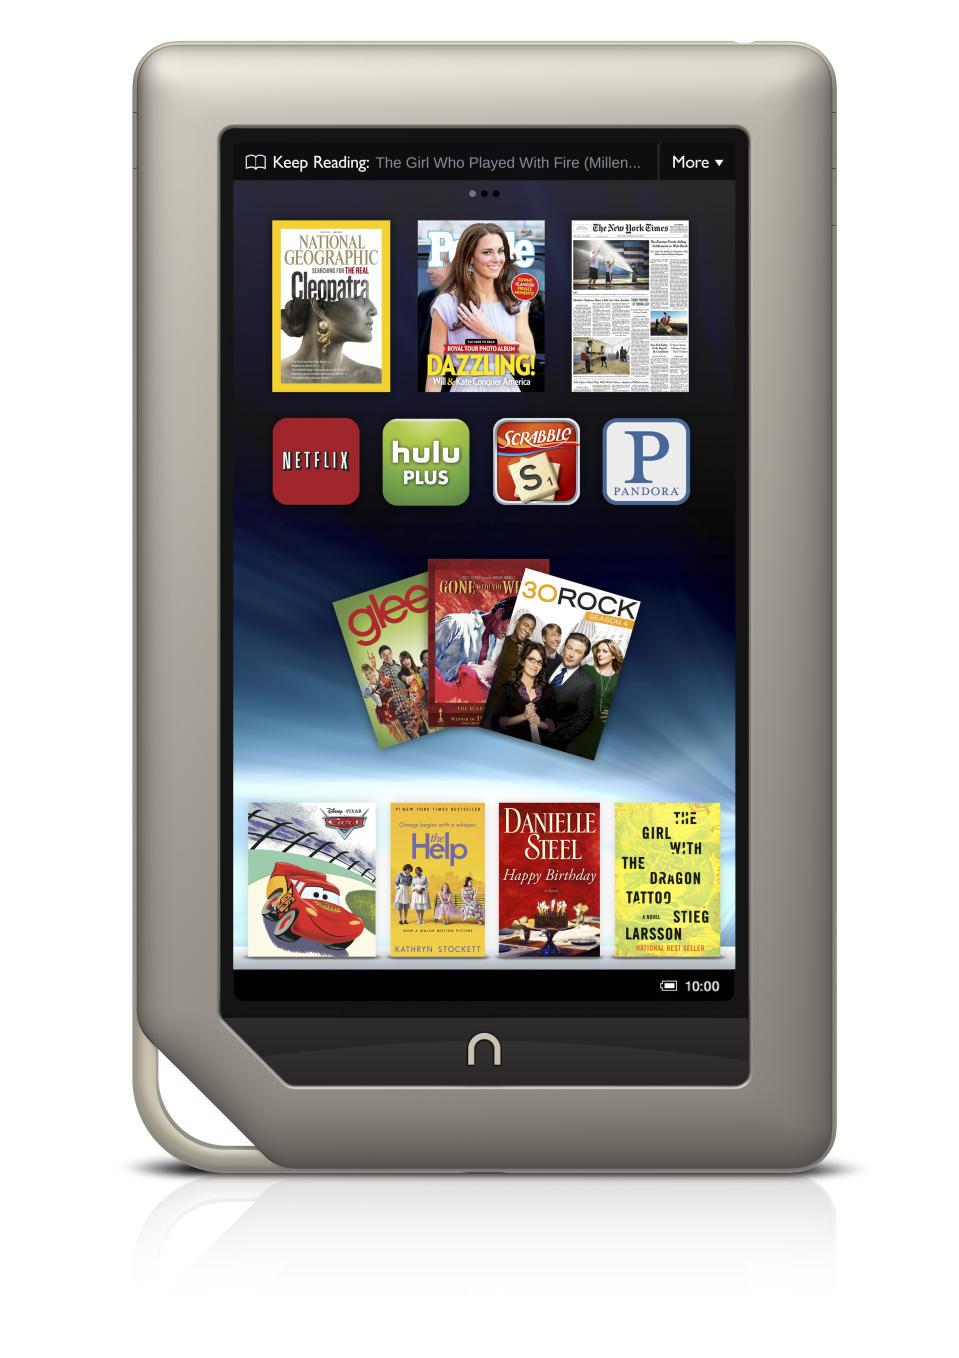 <p> FILE - This file product image provided by Barnes & Noble Inc., shows the new $249 Nook Tablet, which was unveiled Monday, Nov. 7, 2011, in New York. Barnes & Noble Inc. and Microsoft Corp. are teaming up to create a new Barnes & Noble subsidiary that will house the digital and college businesses of the bookseller and include a Nook application for Windows 8. The companies said Monday, April 30, 2012 that they are exploring separating those businesses entirely. That could mean a stock offering, sale, or other deal could happen. (AP Photo/Barnes & Noble Inc., File) </p>